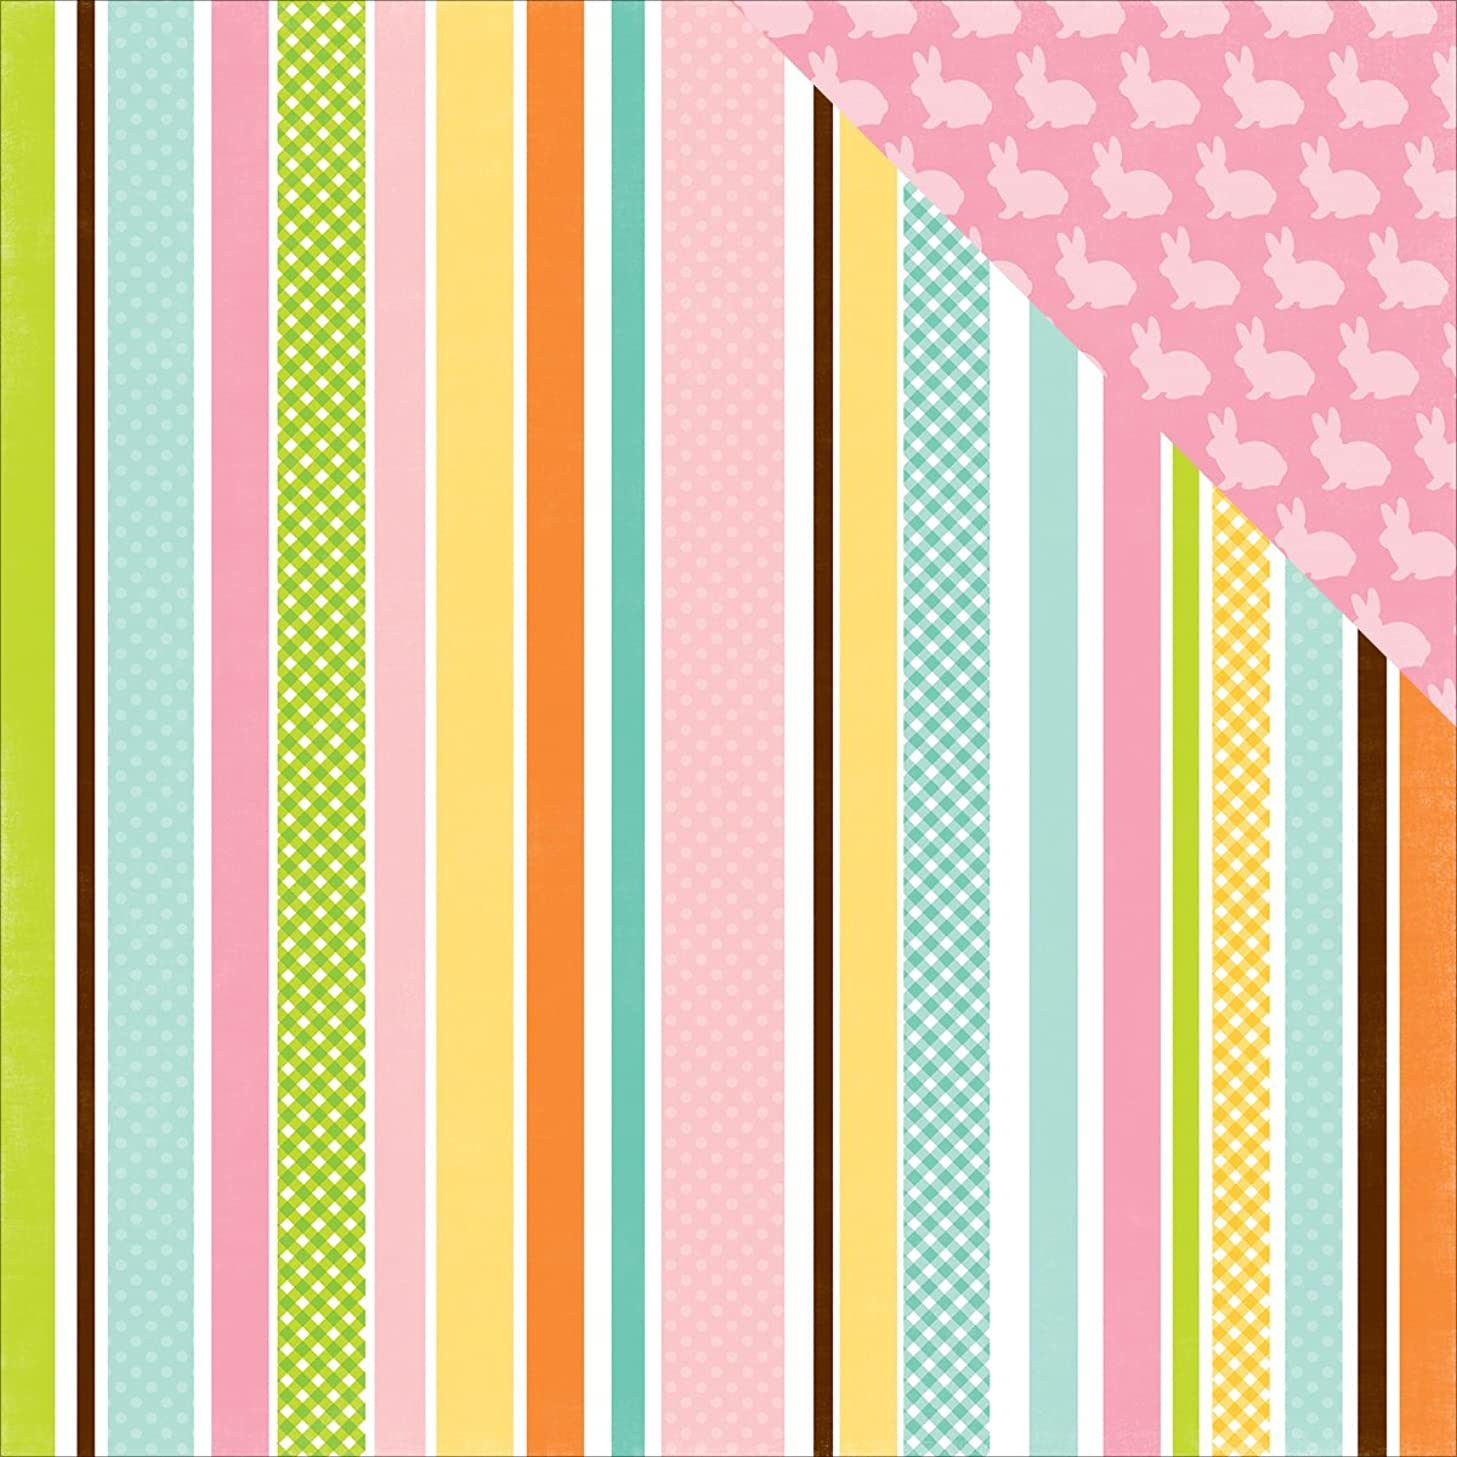 Echo Park Paper EA100004 Double-Sided Cardstock (25 Sheets Per Pack), 12